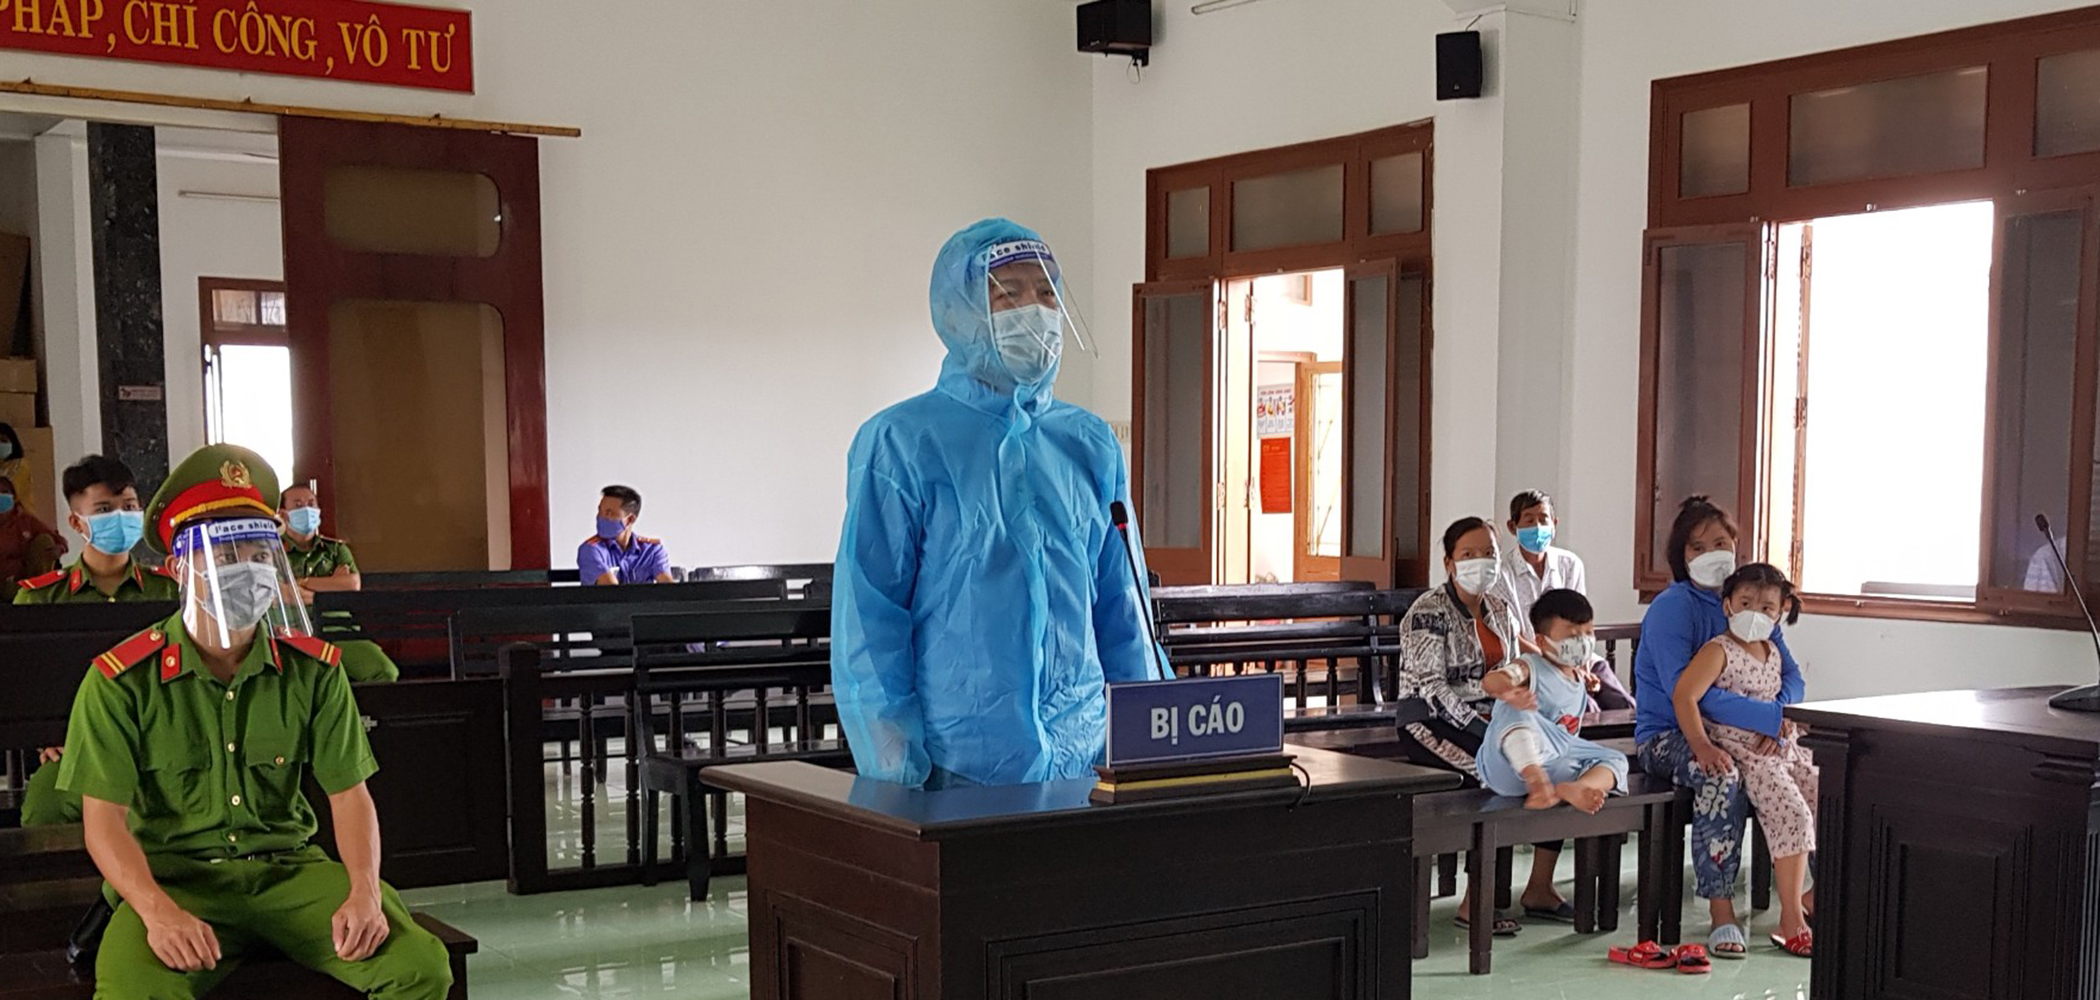 Vietnamese man imprisoned for 25 years for causing house fire that injured four people